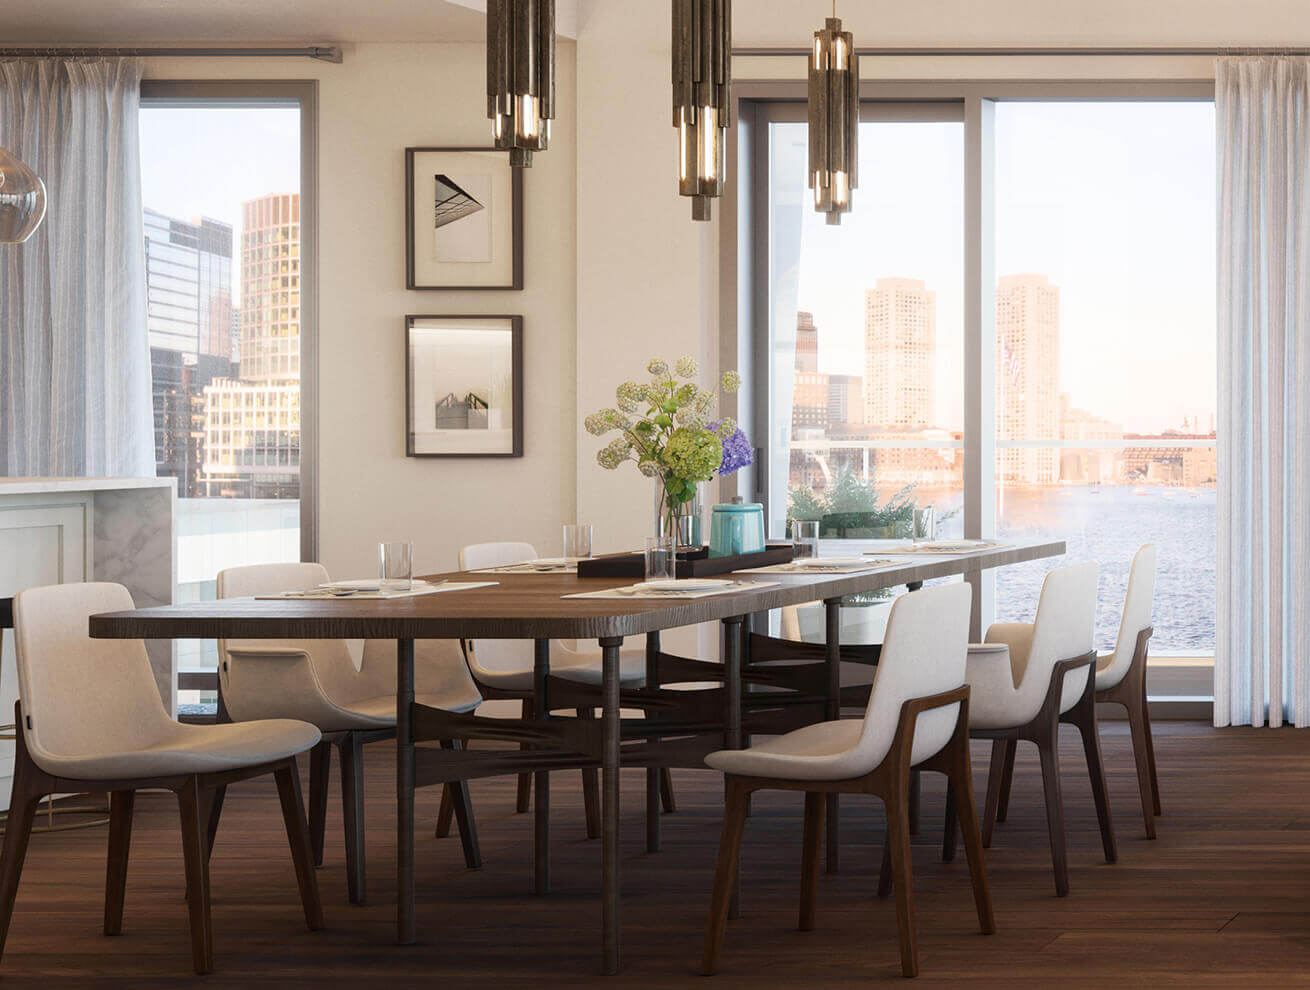 New luxury condominiums in seaport Boston | PIER 4 by Tishman Speyer